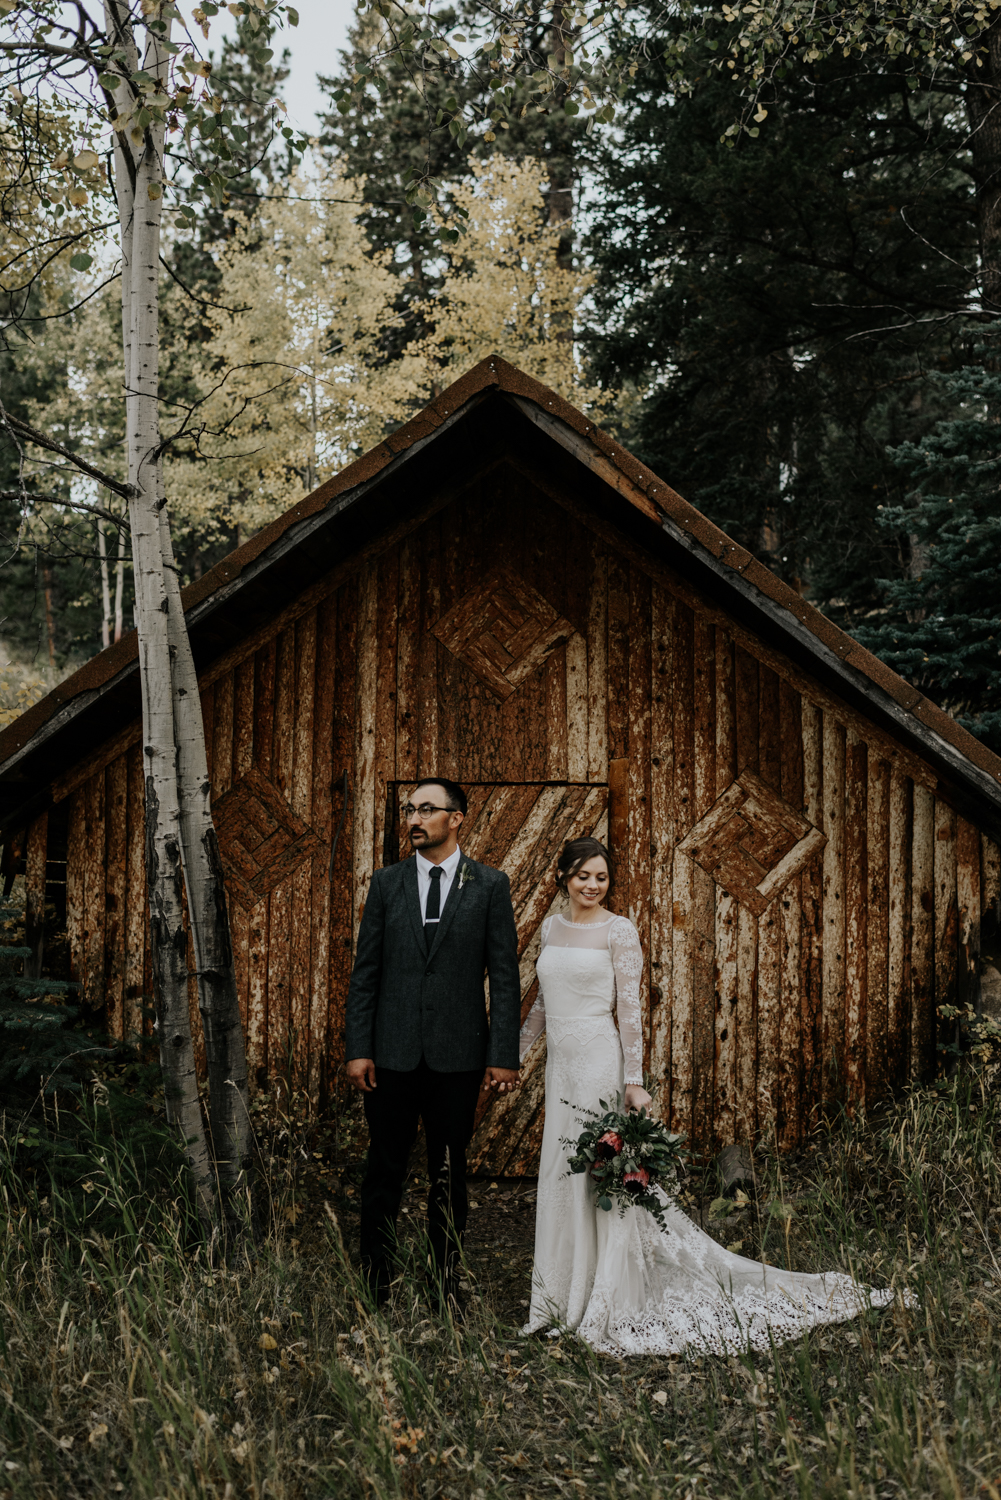 Intimate Mountain Wedding Bride and Groom Photos in Meadow Creek, Pine Colorado